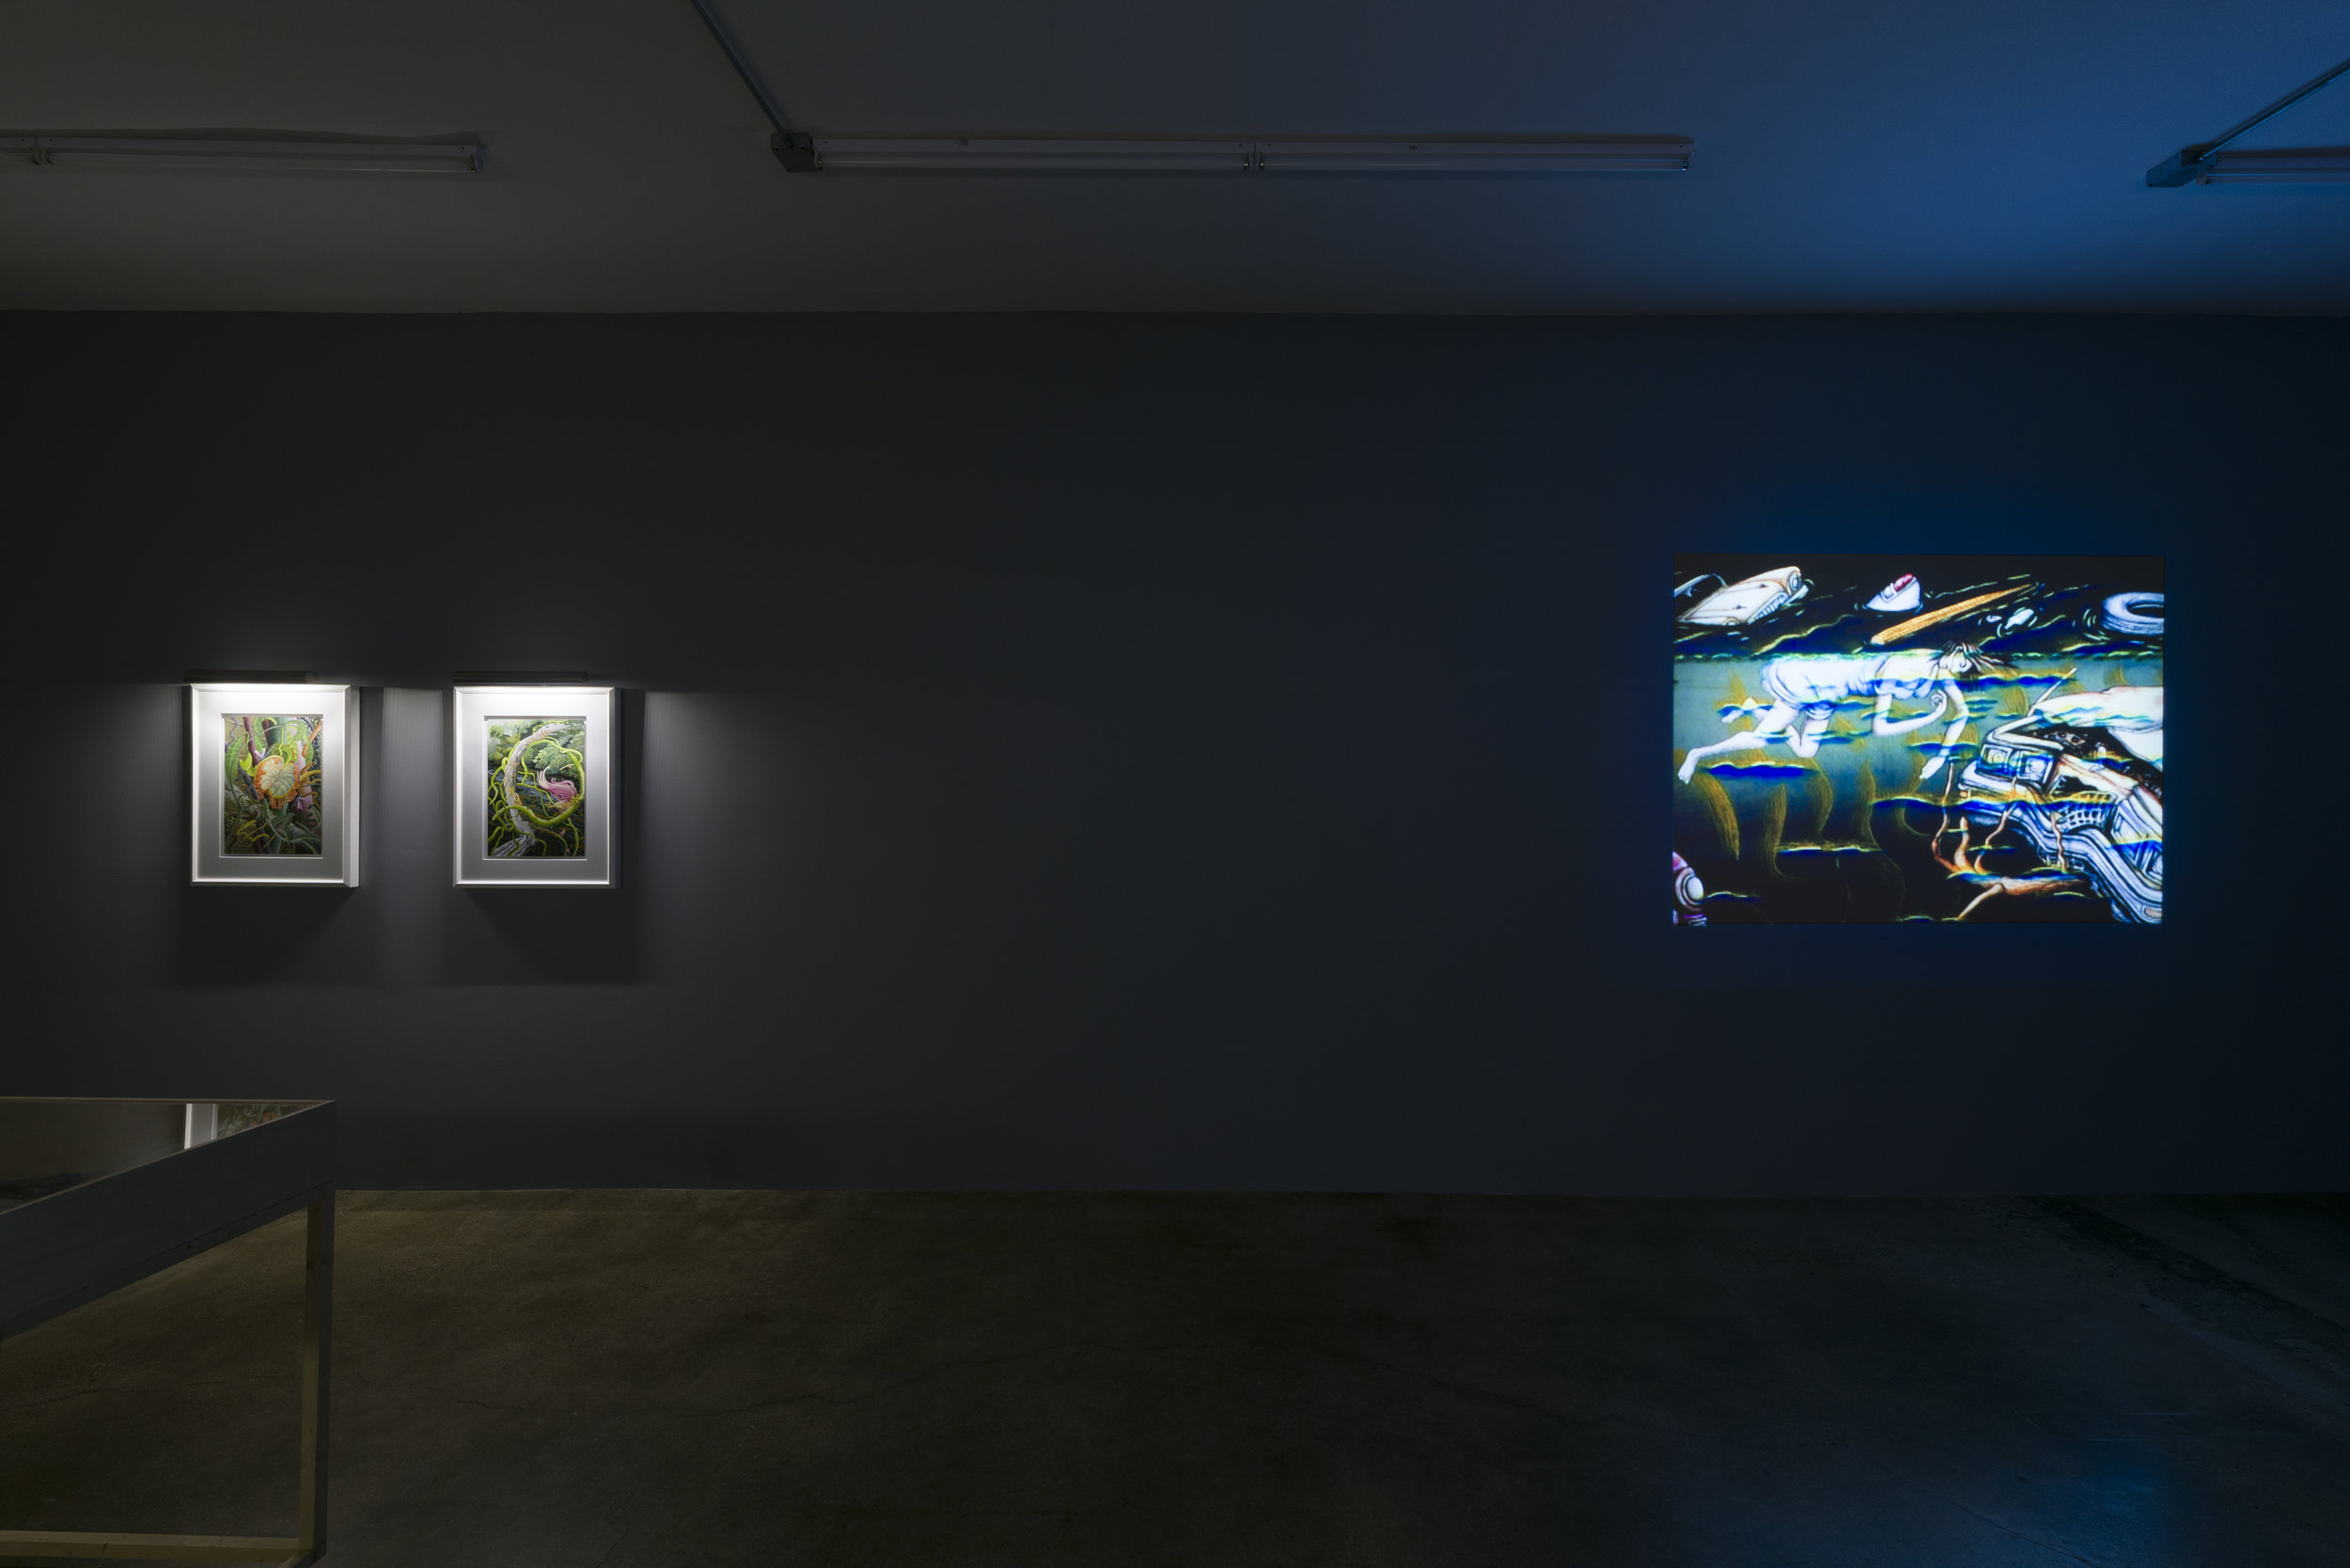 Installation view of Suzan Pitt:  Joy Street   March 31 - May 5, 2019  Photo by Ruben Diaz   Link to press release.